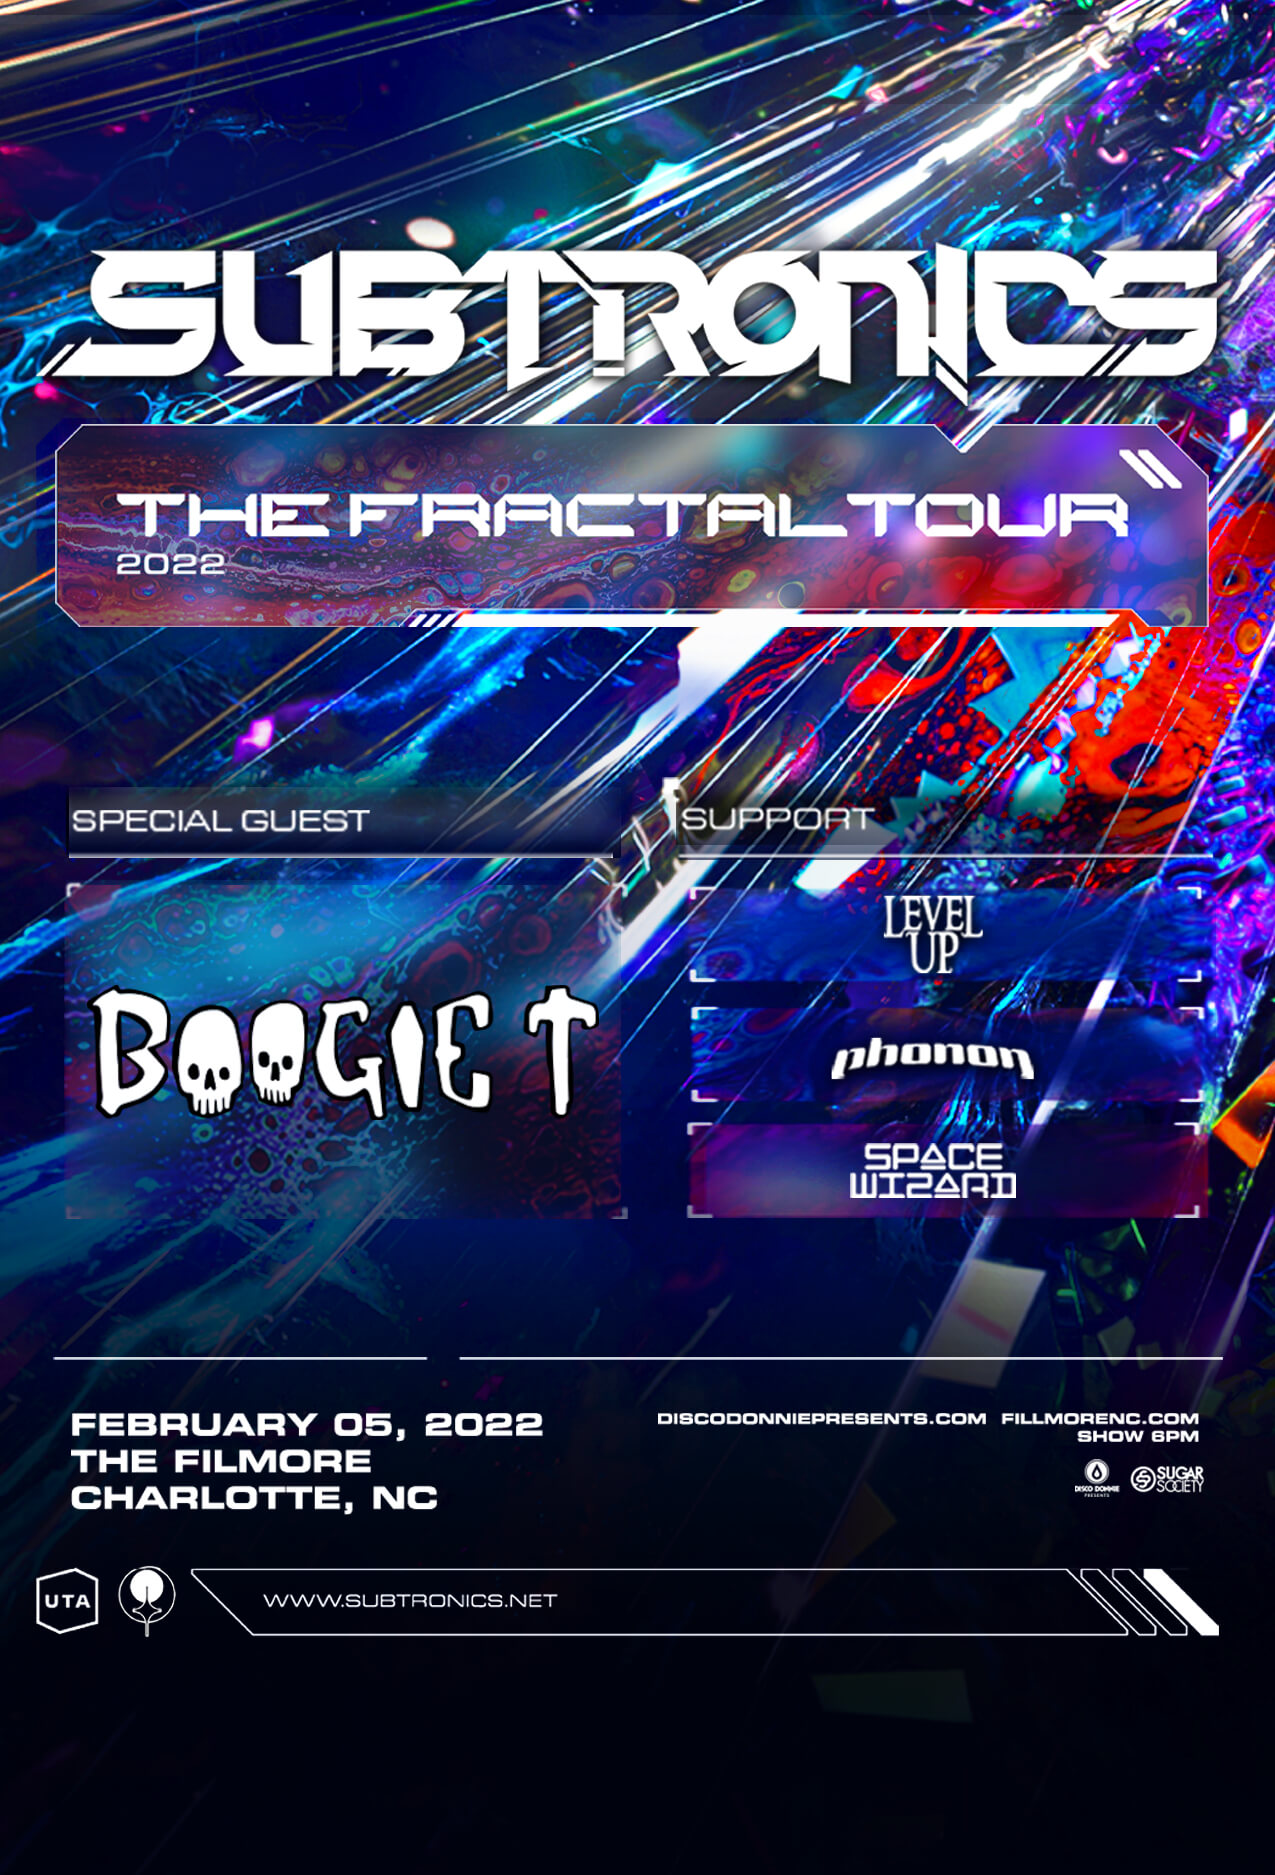 Subtronics, Boogie T, Level Up, phonon, Space Wizard in Charlotte